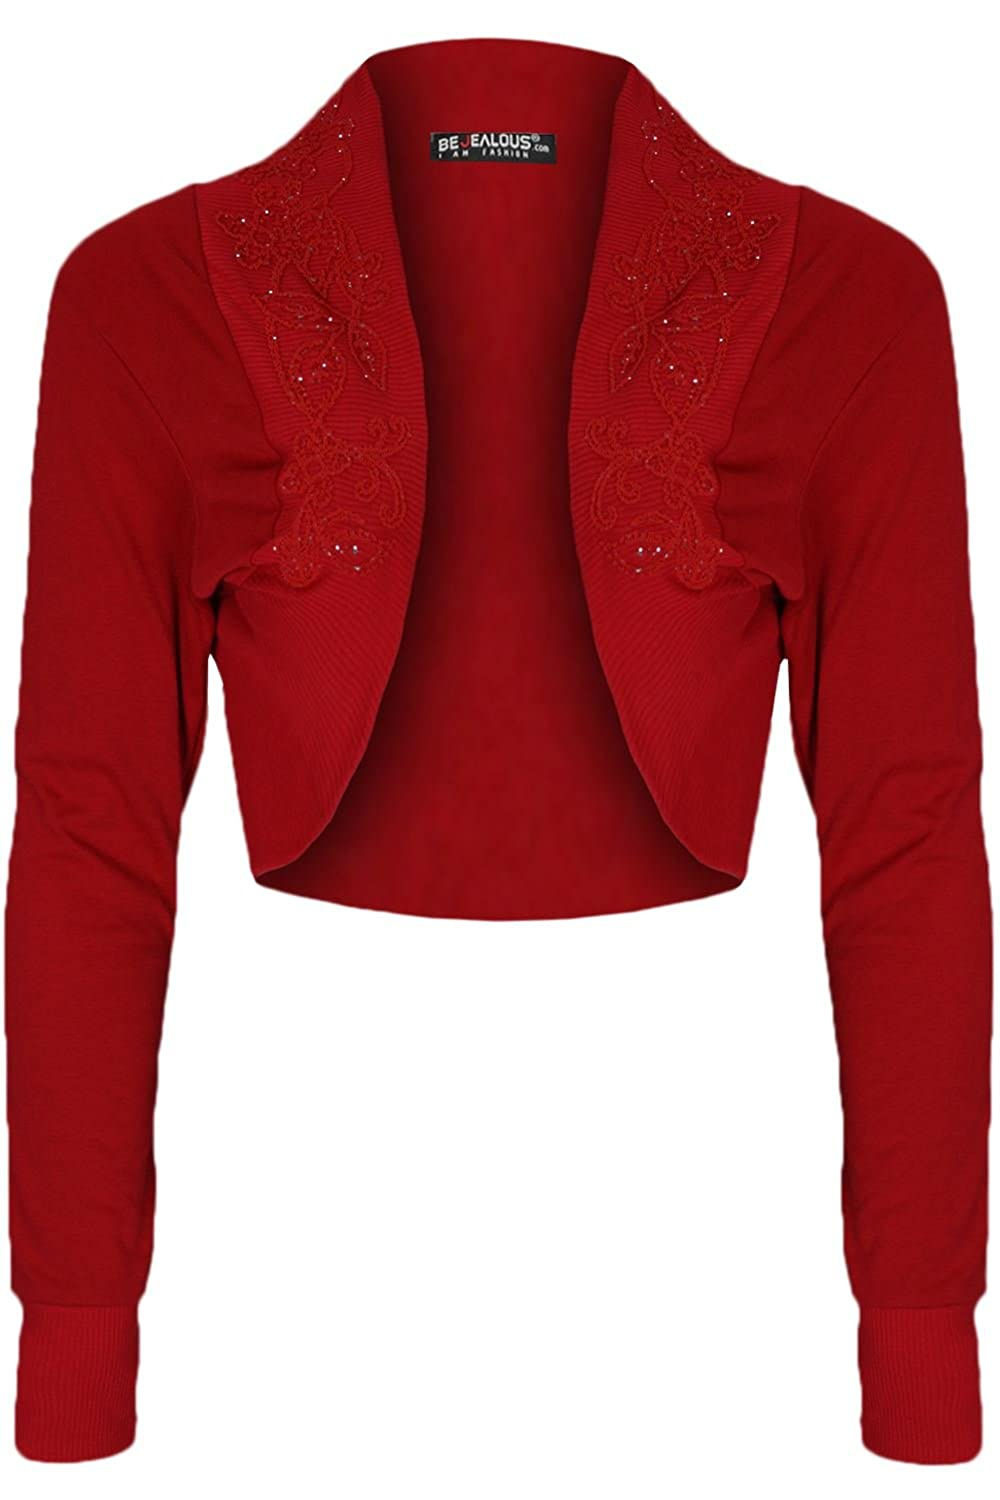 Womens Ladies Diamantes Beaded Studded Stretchy Cotton Bolero Cardigan Shrug Crop Cropped Top BE JEALOUS